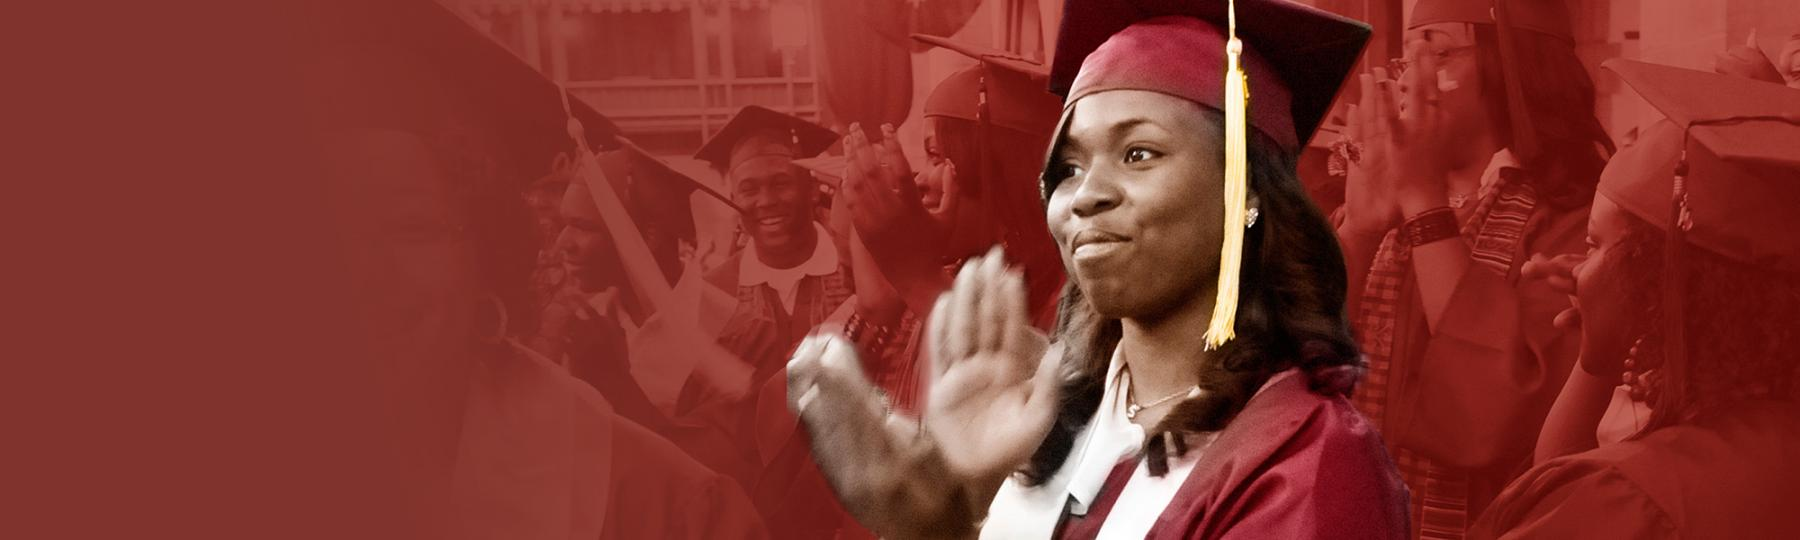 The To&Through Project's mission is to close the aspiration-attainment gap with research, data, and resources designed to give every student who aspires to earn a college degree the opportunity and support to do so.